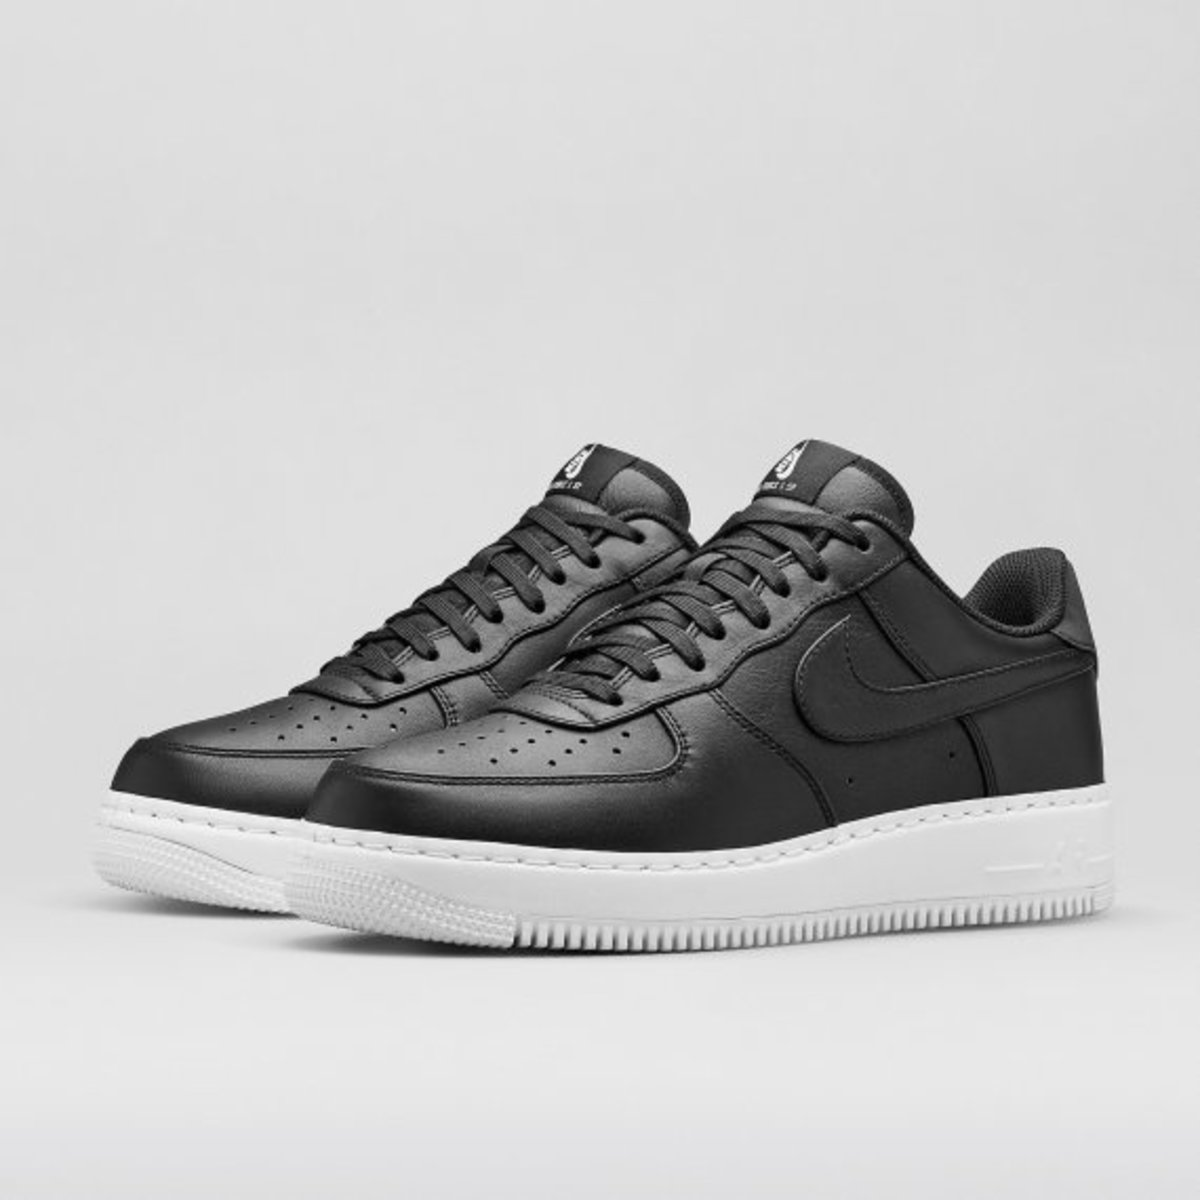 nike-air-force-1-cmft-collection-for-nikelab-09